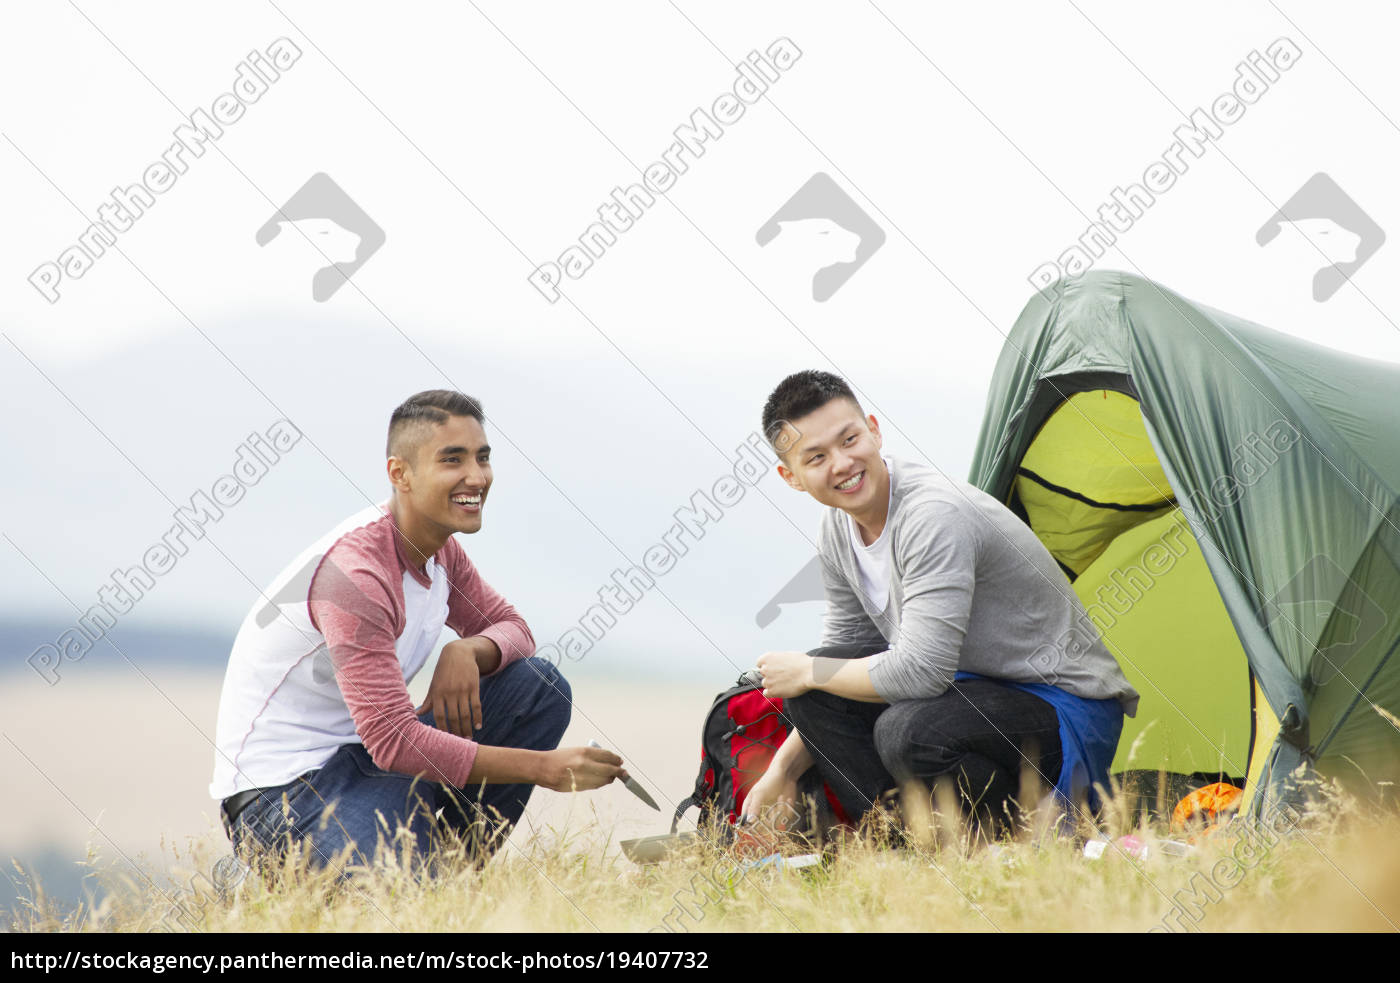 two, young, men, on, camping, trip - 19407732